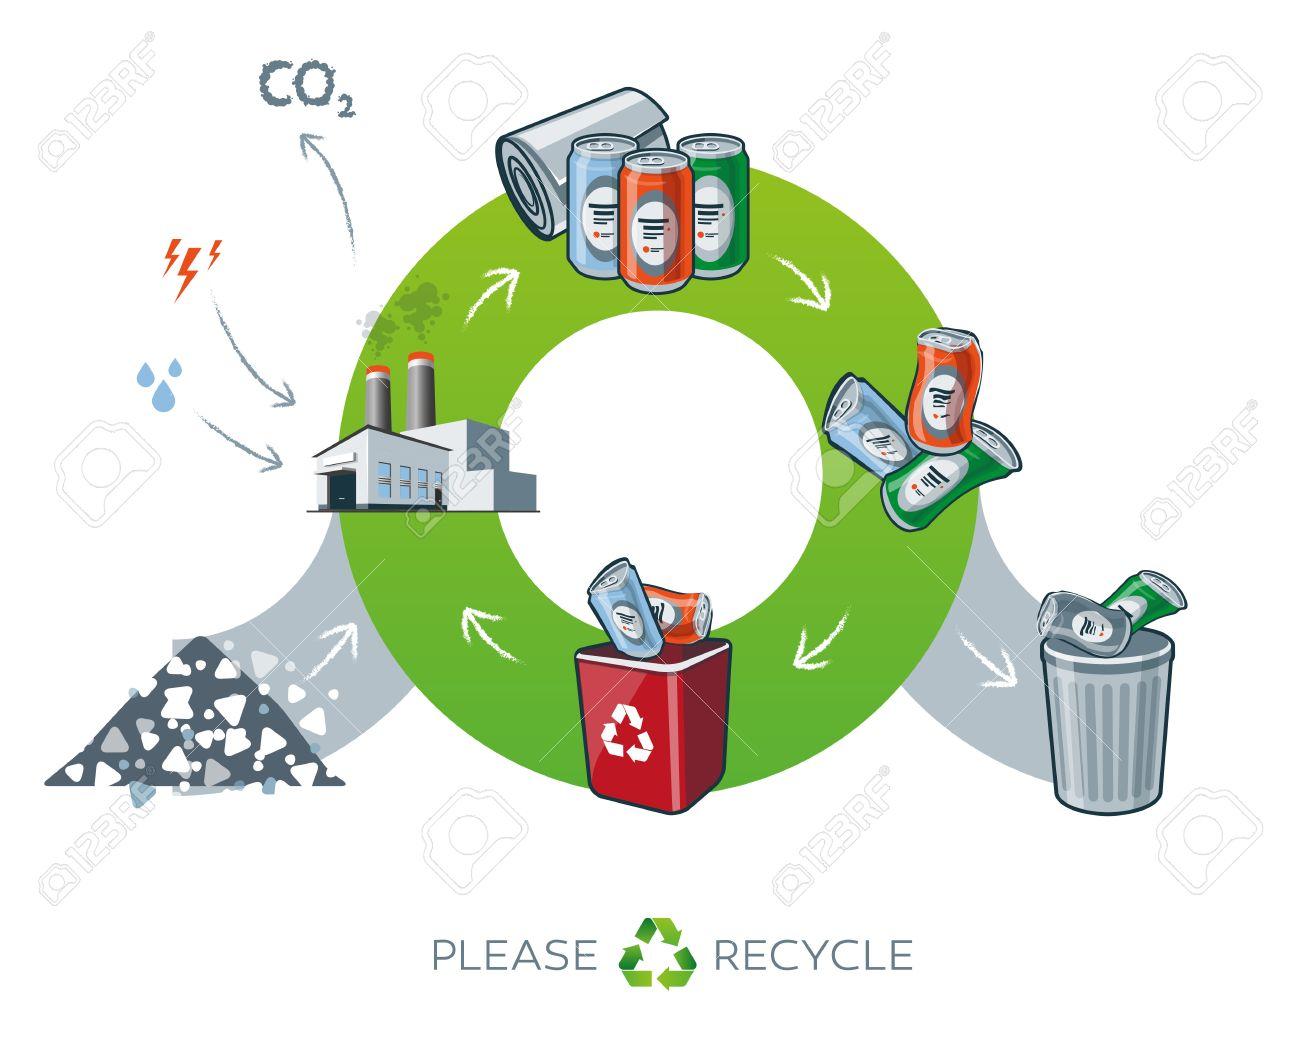 Life cycle of metal recycling simplified scheme illustration in life cycle of metal recycling simplified scheme illustration in cartoon style showing transformation of raw material to metal can products energy and water ccuart Gallery